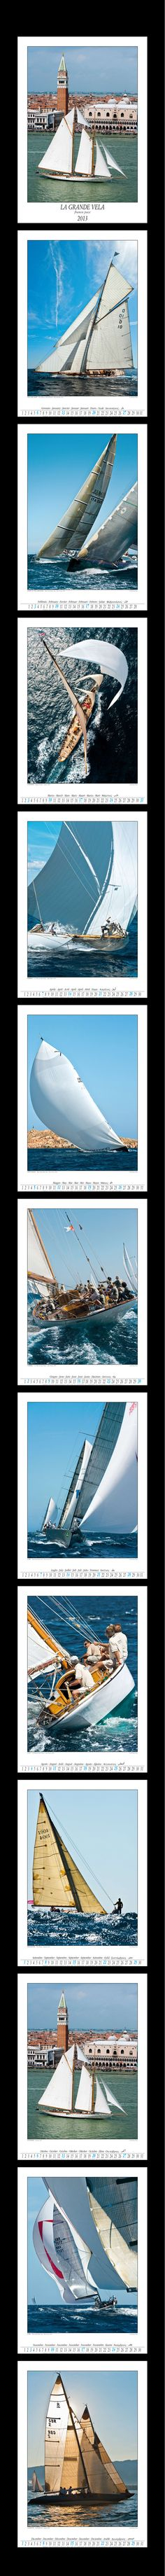 Calendar 2013, This large size calendar presents 12 colourful images with a clean graphic composition, covering the most important events in the world of sailing. Franco Pace captures with his camera the elegance of classic yachts, the advanced tecnology of modern racing boats and the charm of traditional working boats.    It is possible to have a personalized version for companies. Size: 48 x 68 cm  (18.9 x 26.8 in.)  Christmas gifts, Sailing, Classic Boat, $33,00   Ph. Franco Pace